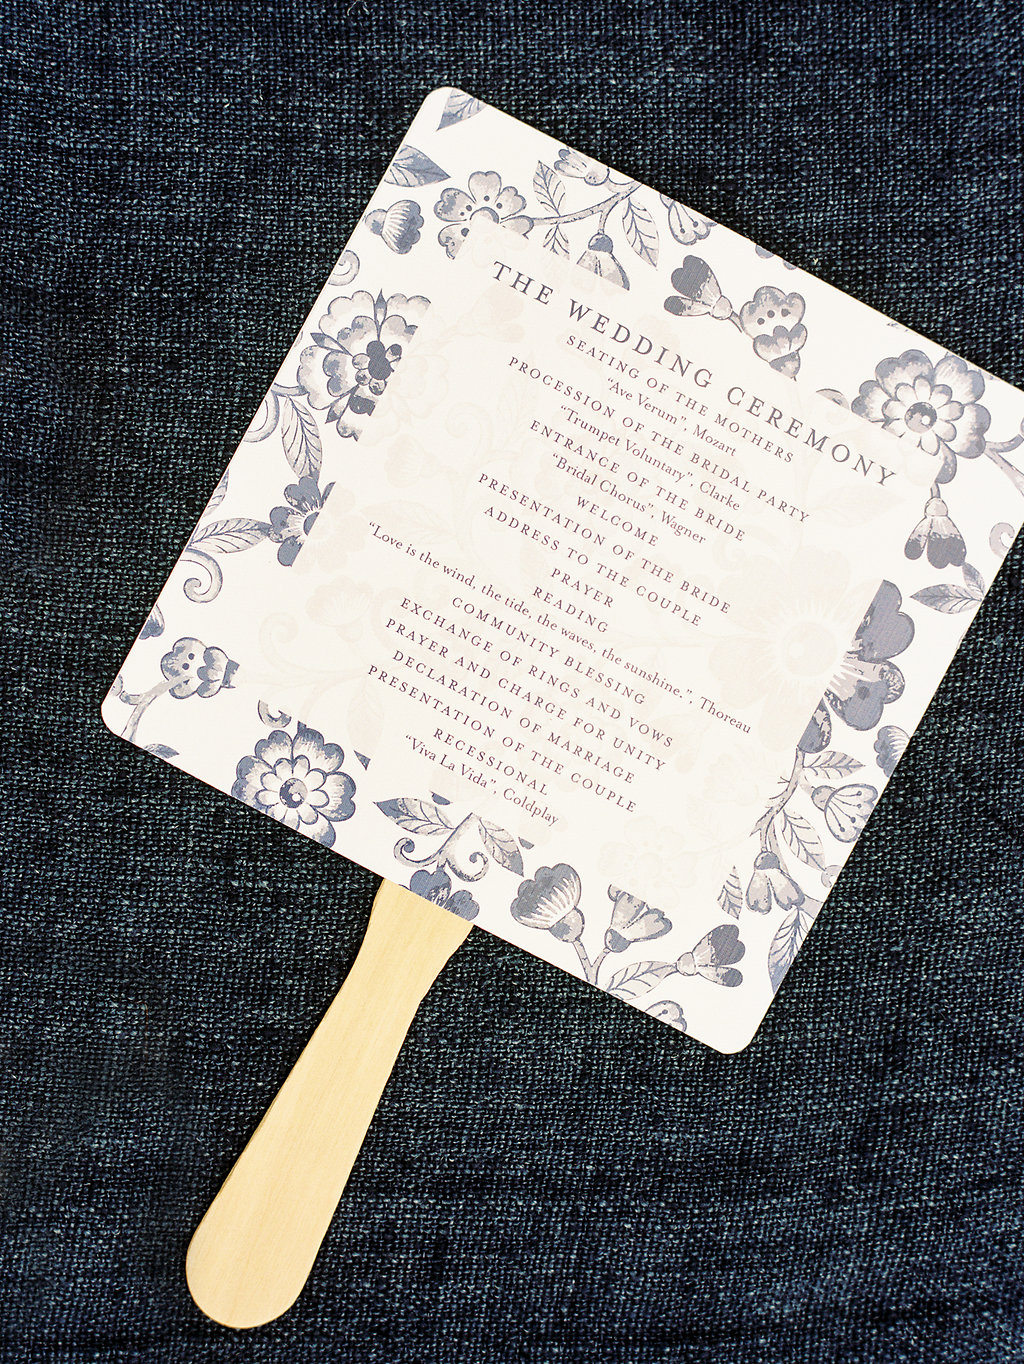 Floral pattern fan wedding program